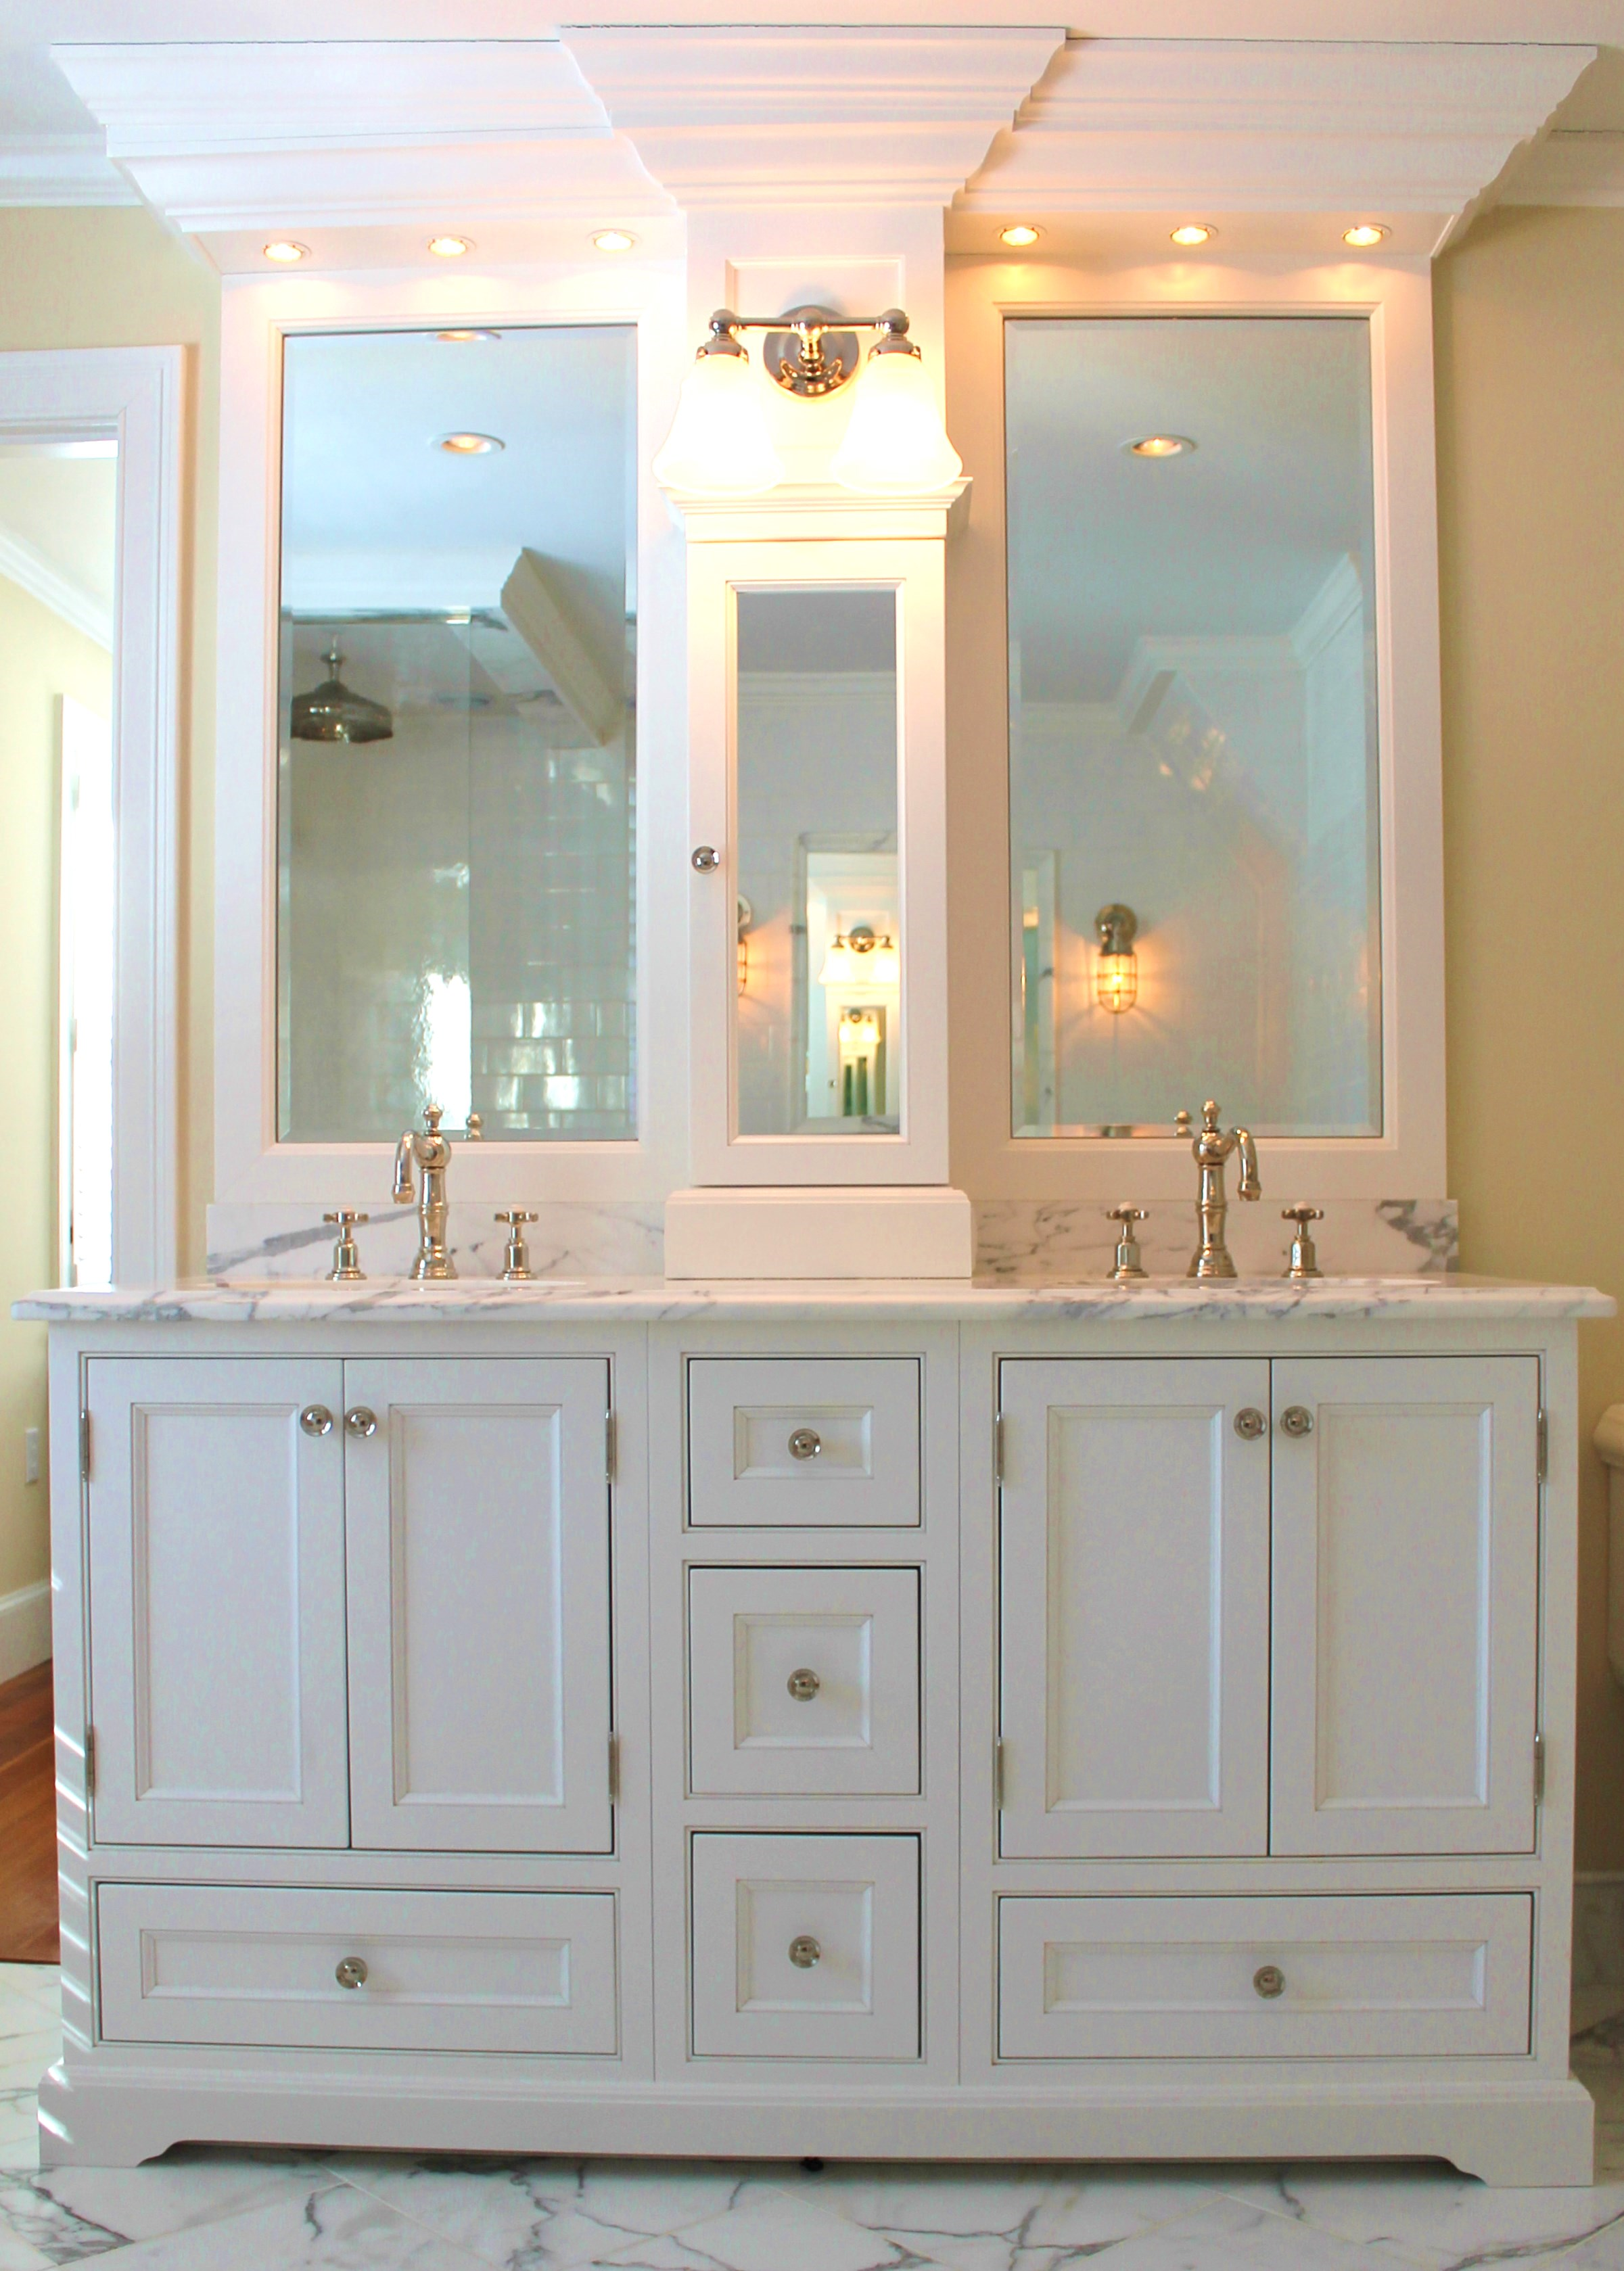 Bathroom Remodeling Bathroom Remodel Bathroom Renovations Cape Cod C J Riley Builder Inc